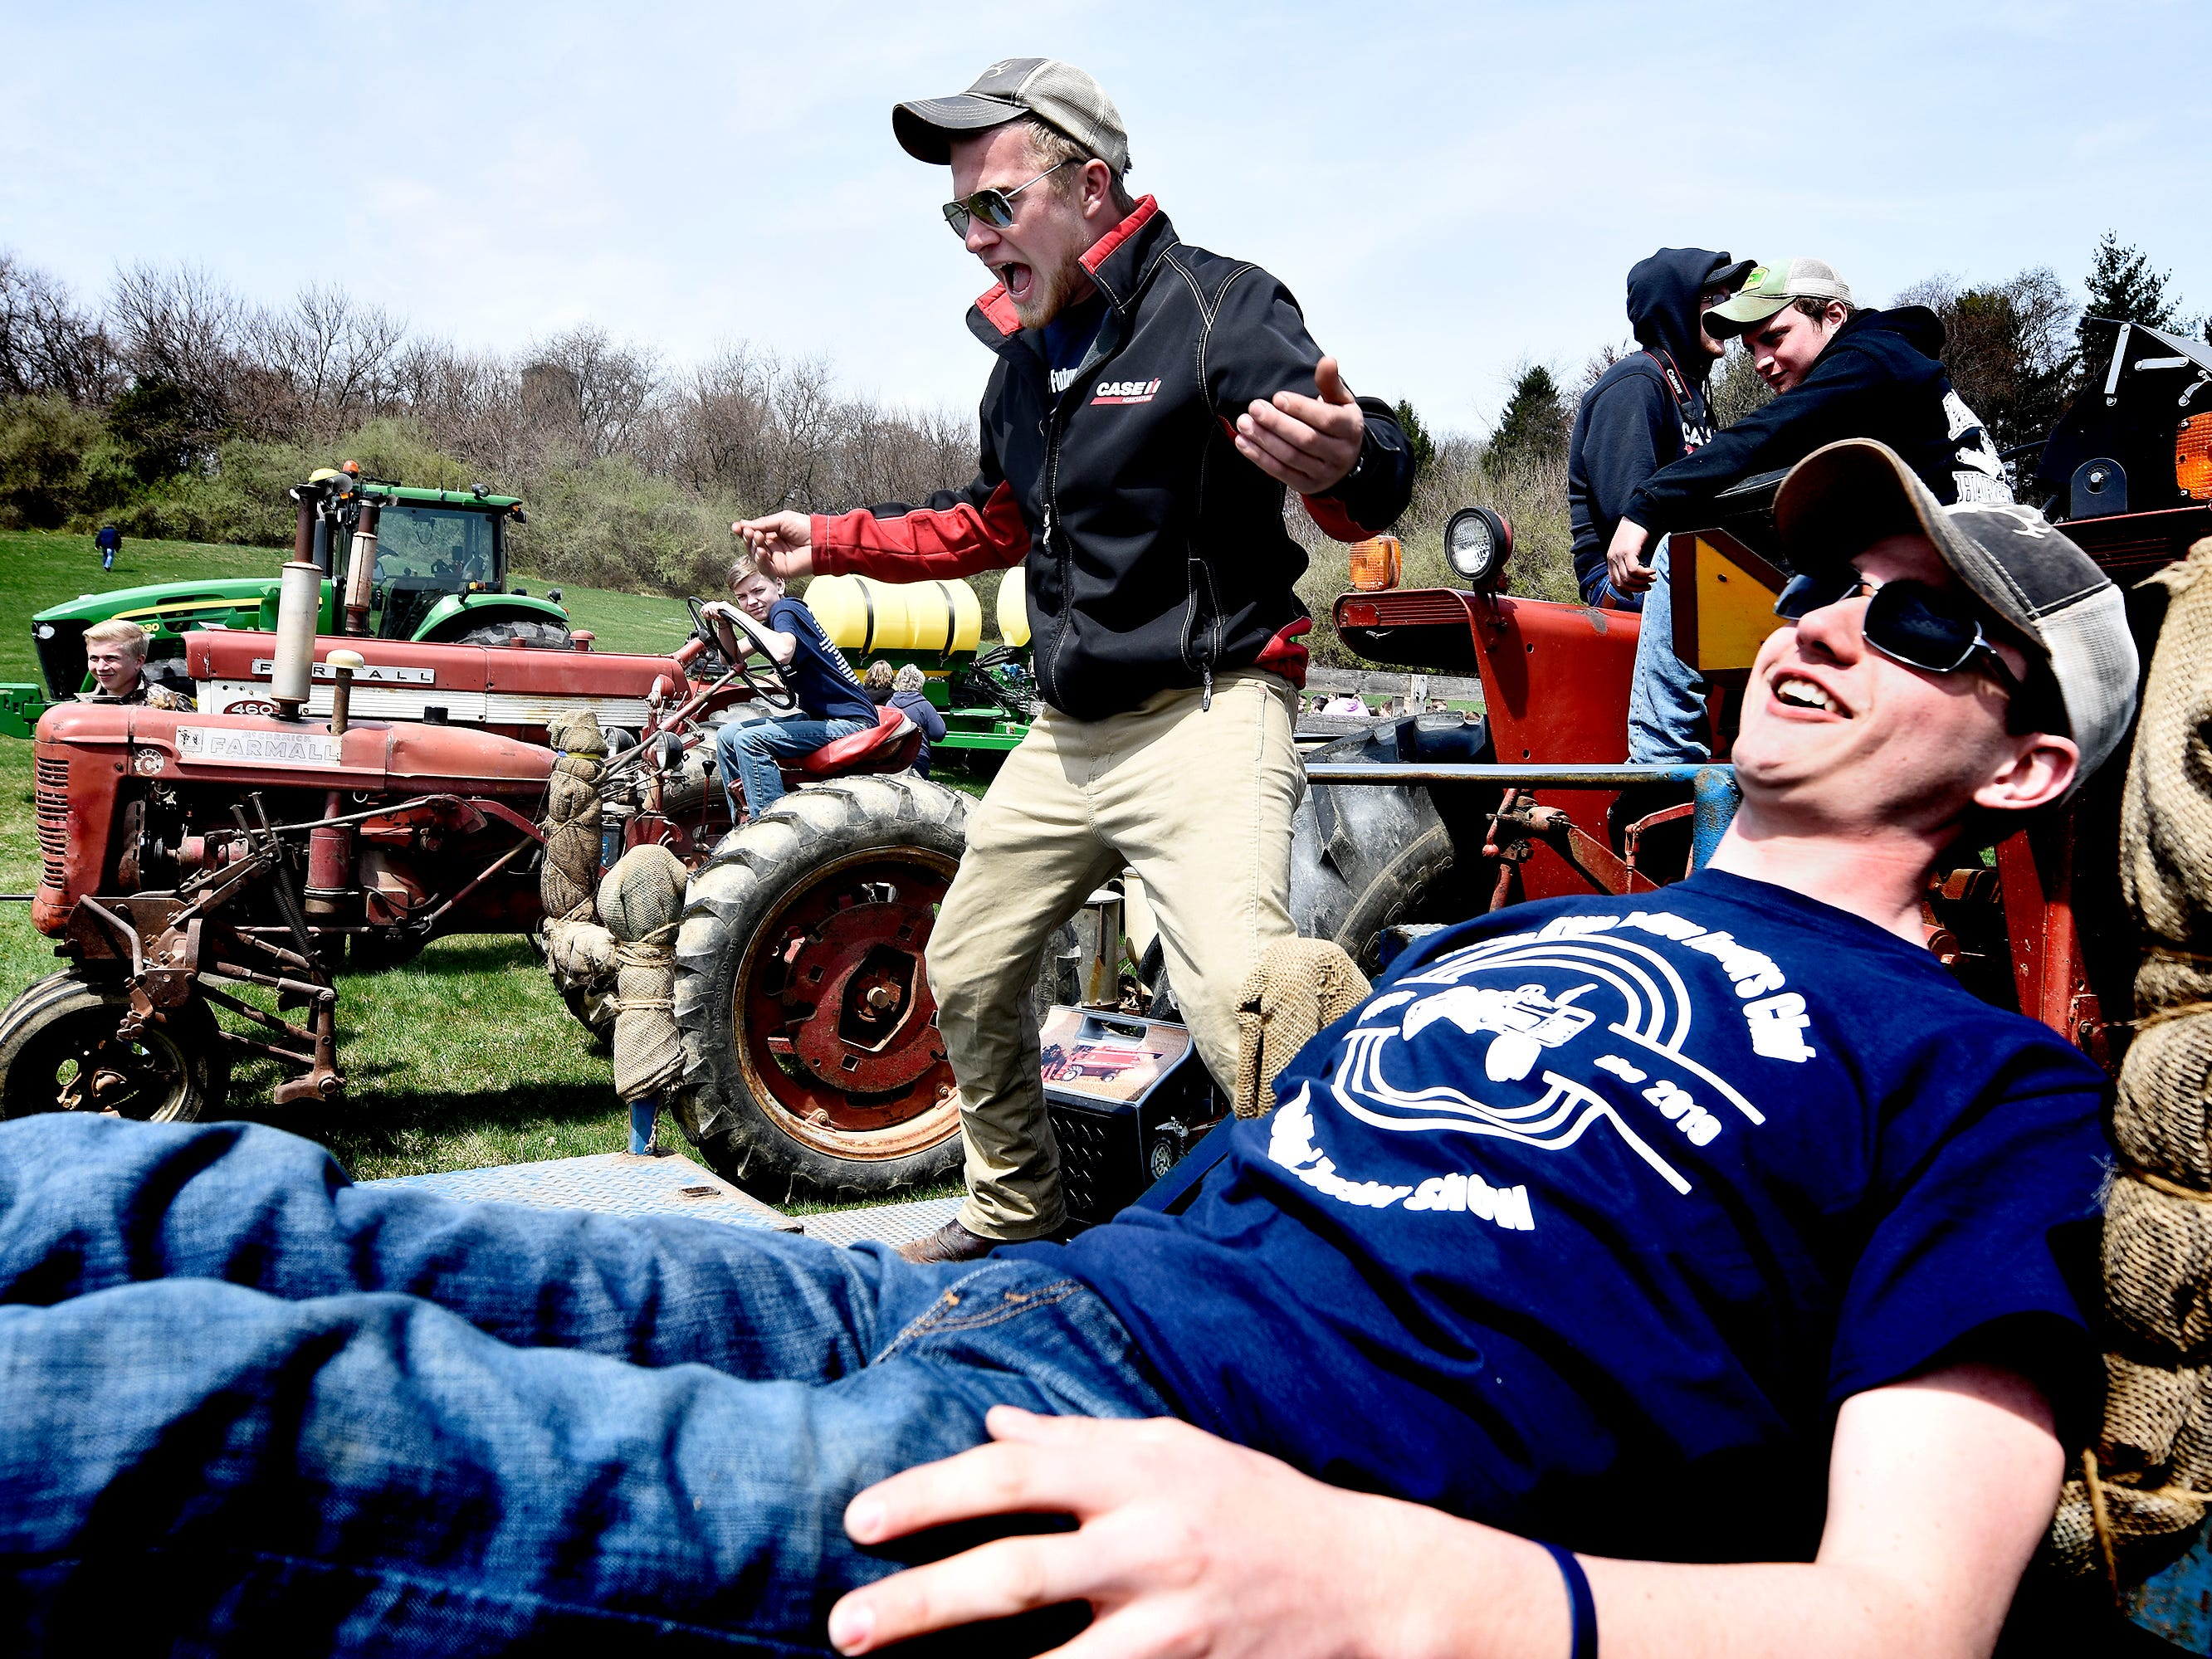 Spring Grove Area High School 2016 graduate Caleb Barshinger, left, and high school junior Sean Rickrode give a presentation on tree planting during the district's 6th Annual Rollin' Tractor Show on Thursday, April 11, 2019. The show is presented by the Future Farmers Club. Alumni and area residents brought farm equipment to display with the goal of acquainting students with the agriculture industry. The show, which included a parade of equipment, visited the intermediate and elementary schools. Caleb's family farm, Barshinger Produce, Codorus Township, participated in the show. Bill Kalina photo